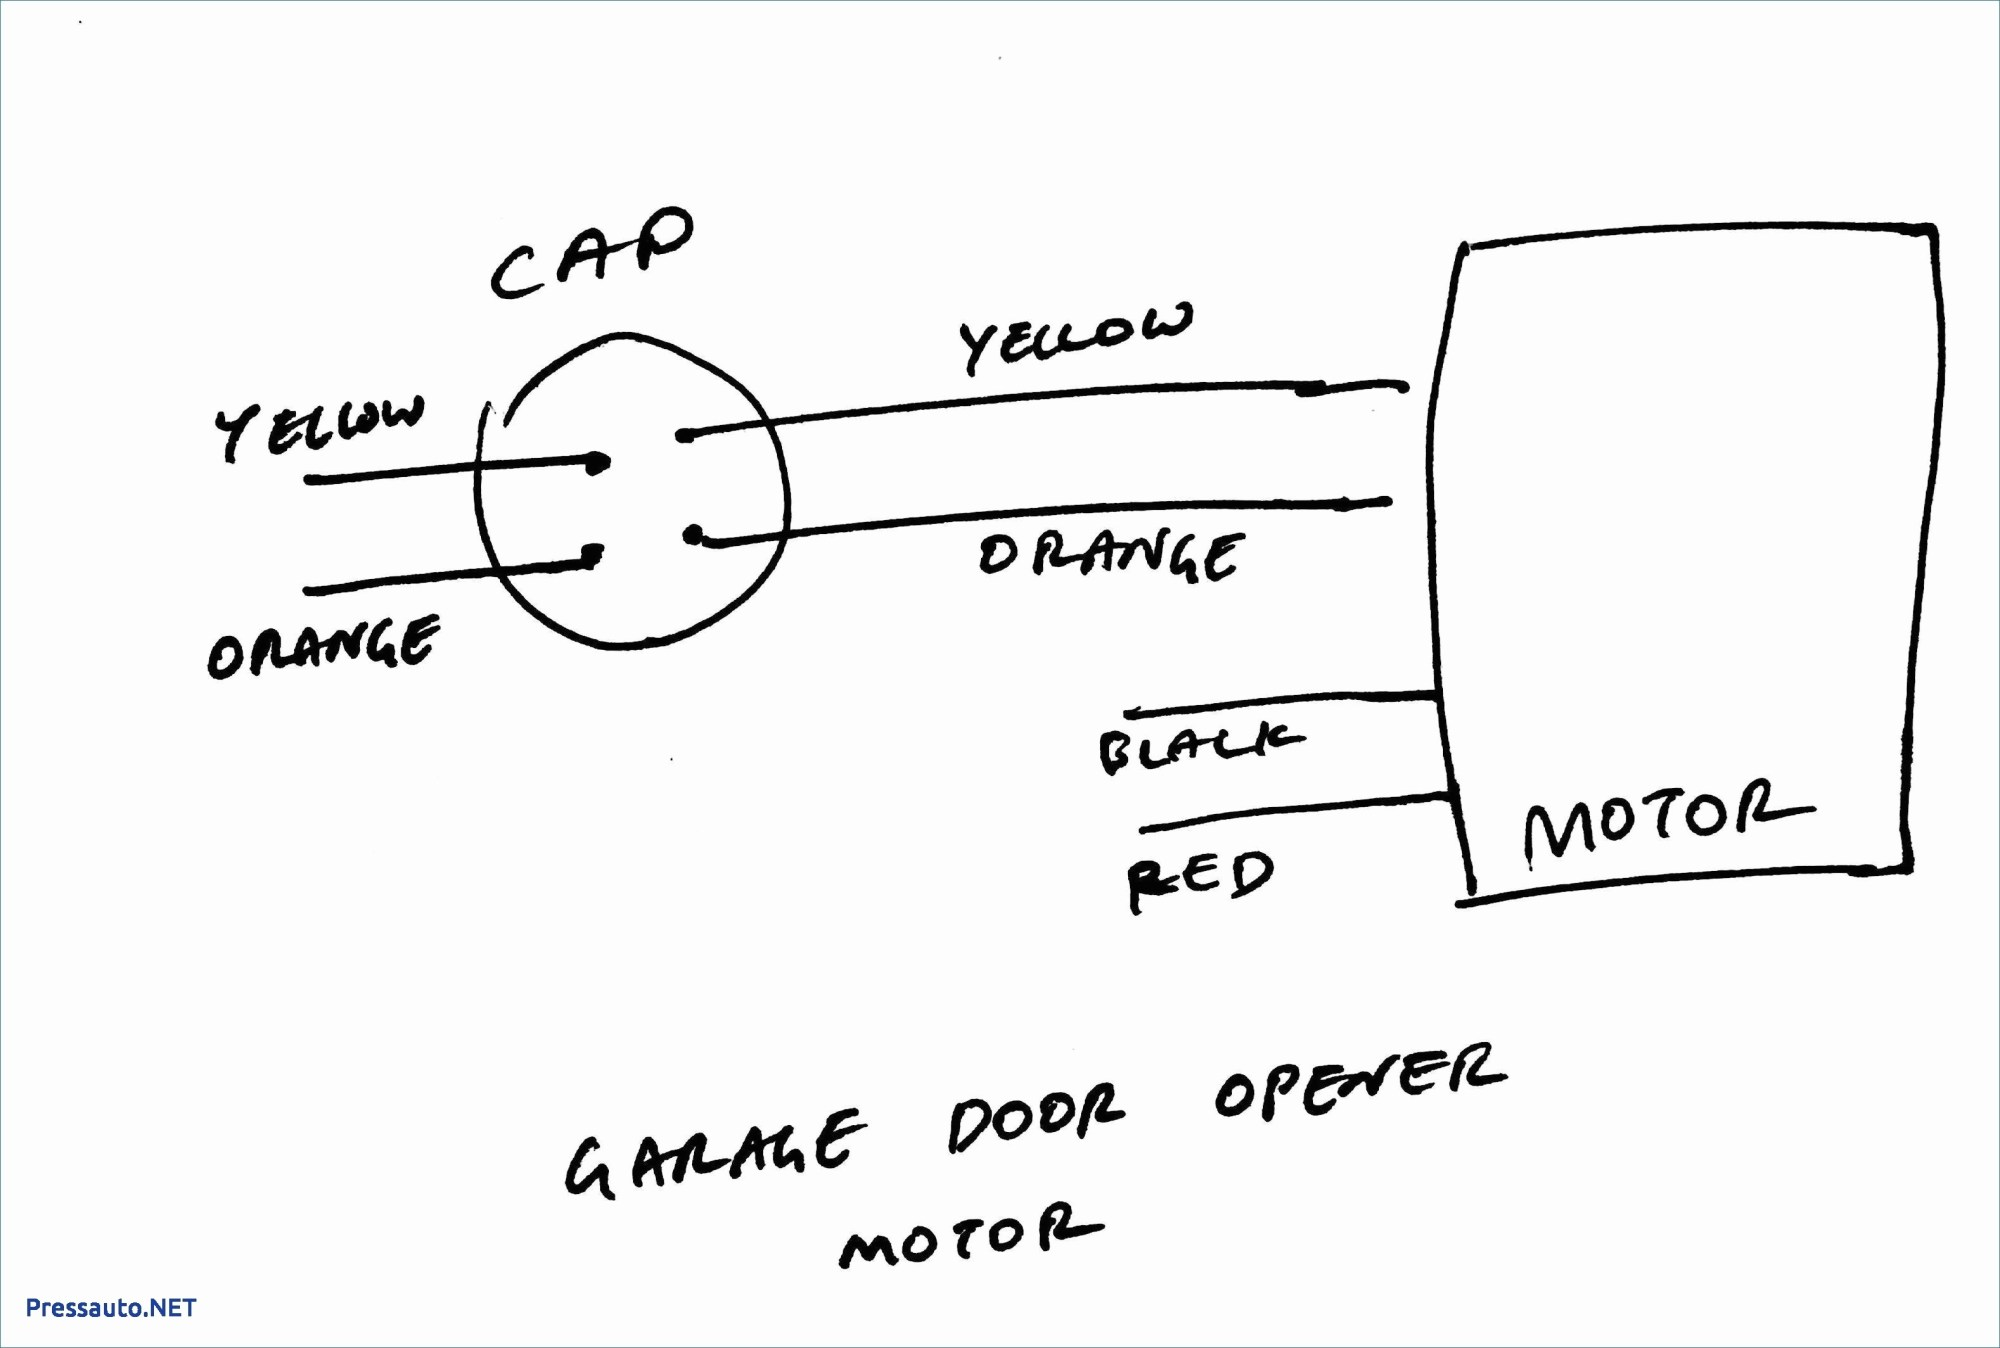 hight resolution of ge dc motor wiring diagram simple electrical wiring diagram 230v single phase wiring diagram ac motor